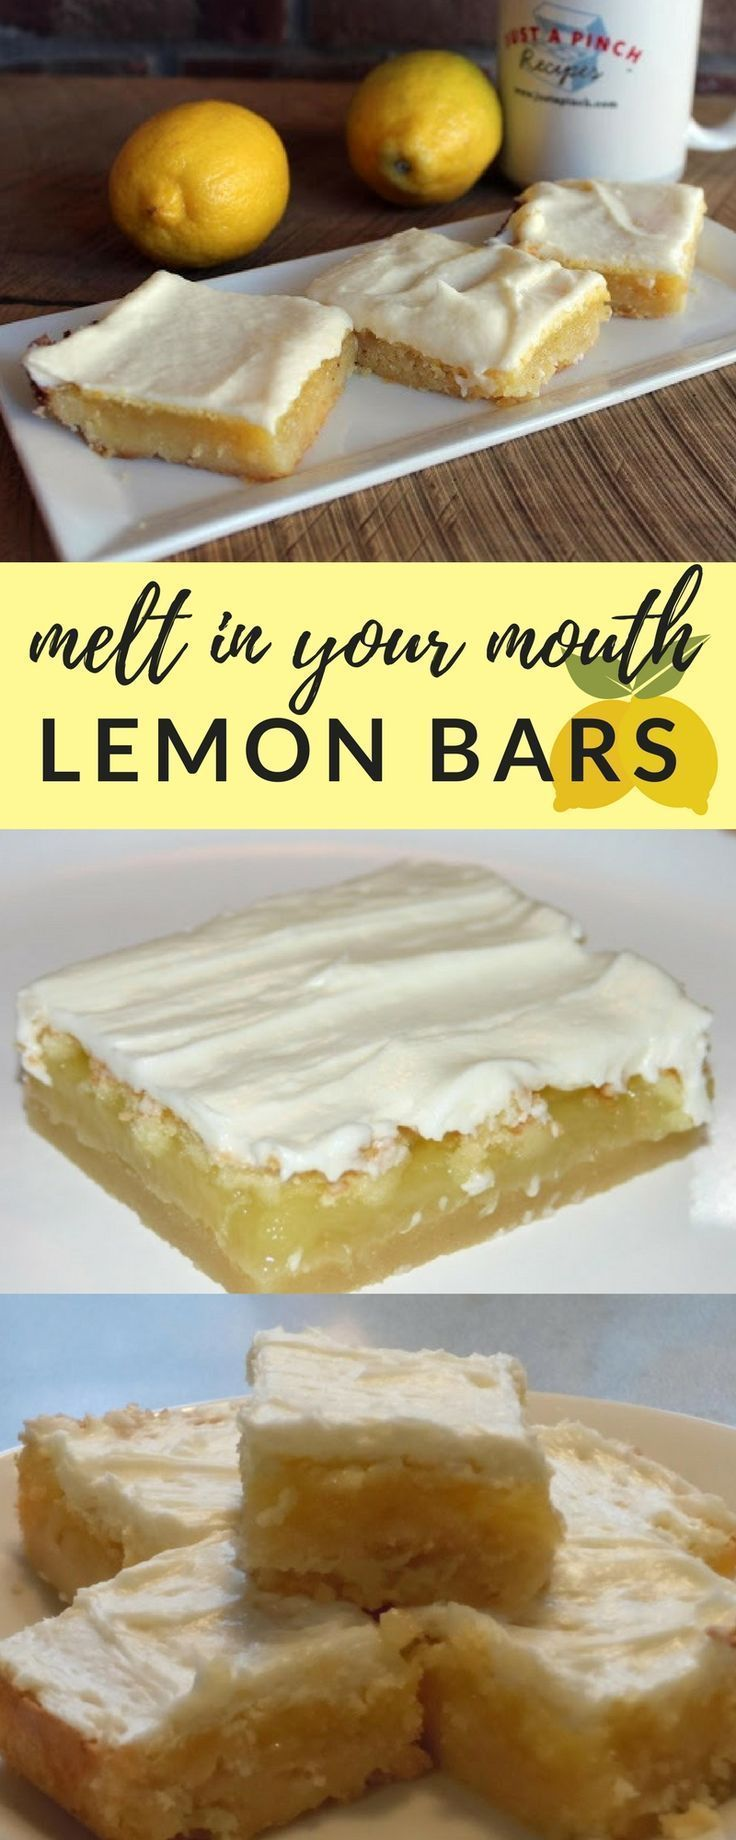 Easy 4 step dessert recipe that everyone will love | Melt In Your Mouth Lemon Bars